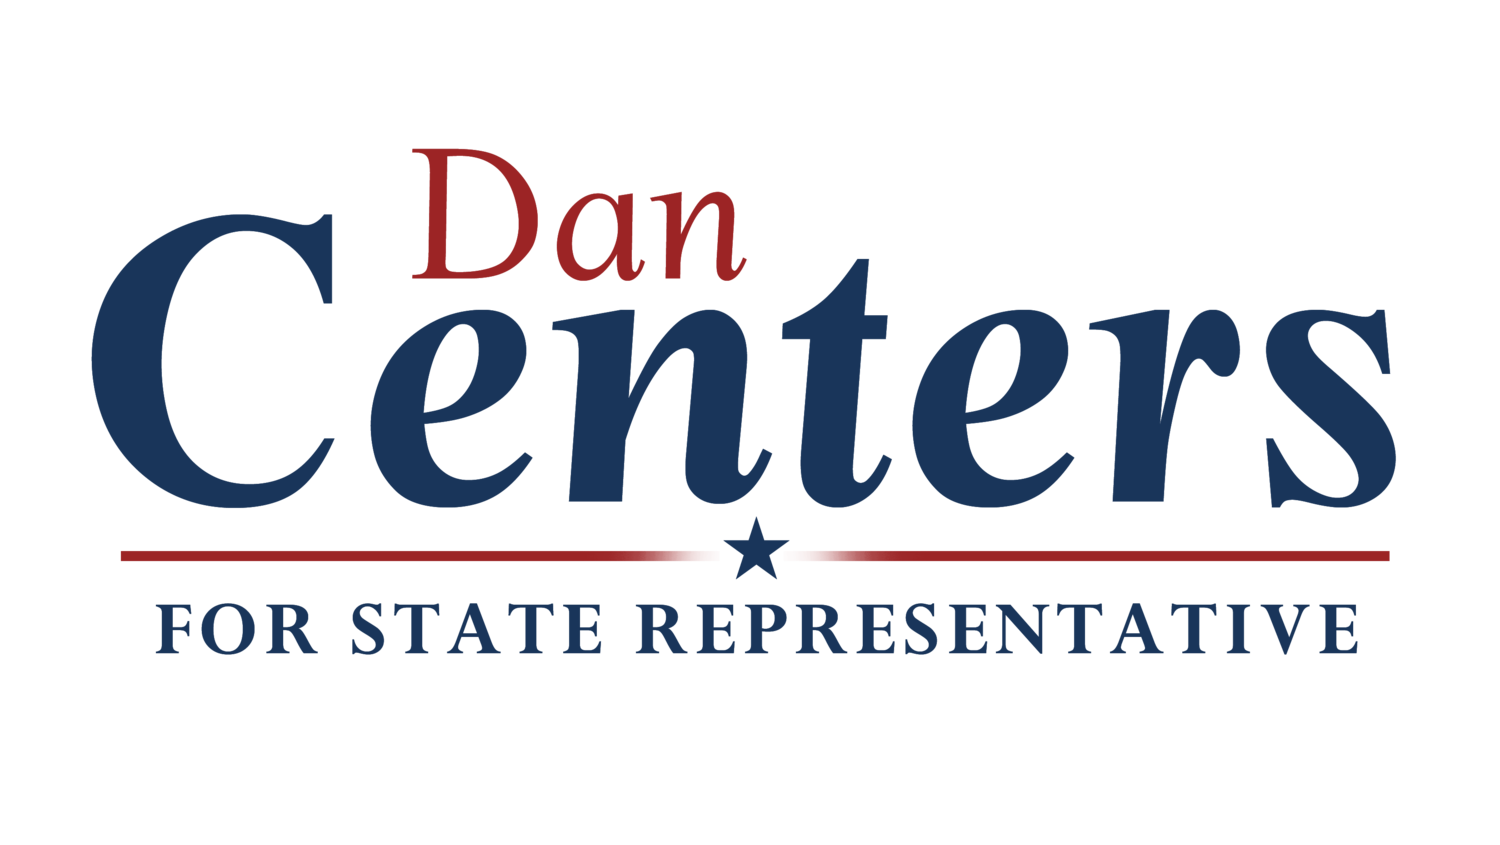 Dan Centers for State Representative